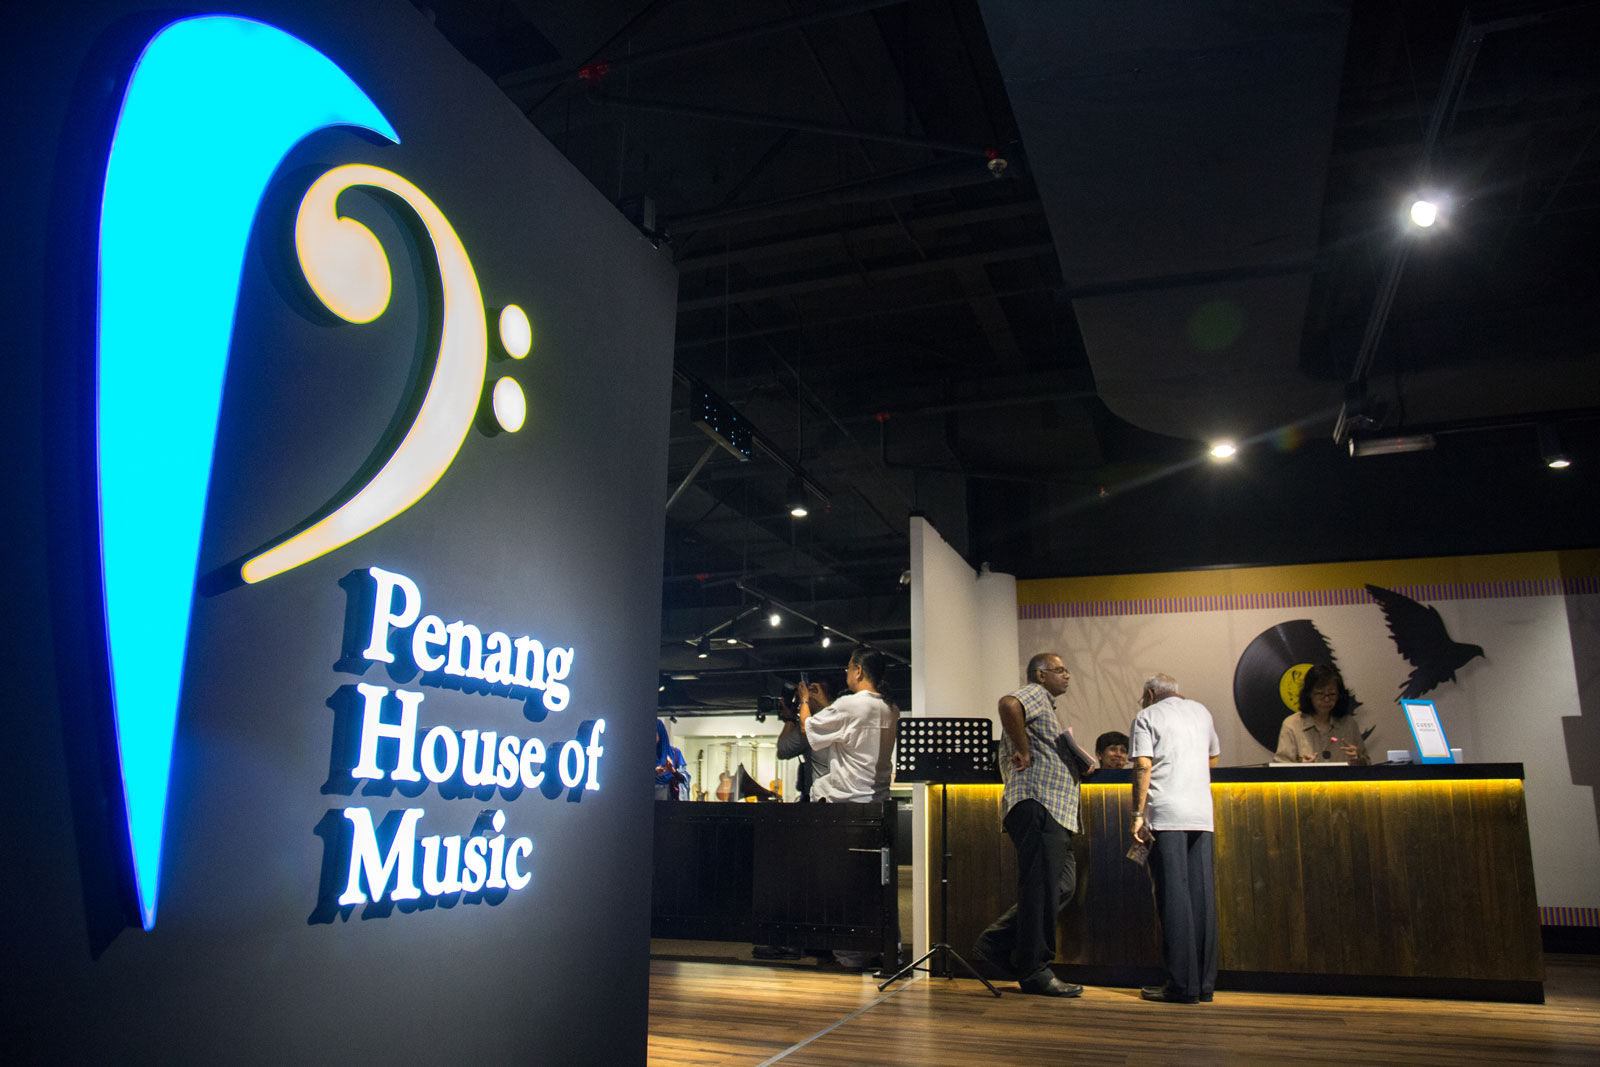 Penang-House-of-Music-Where-to-find-us